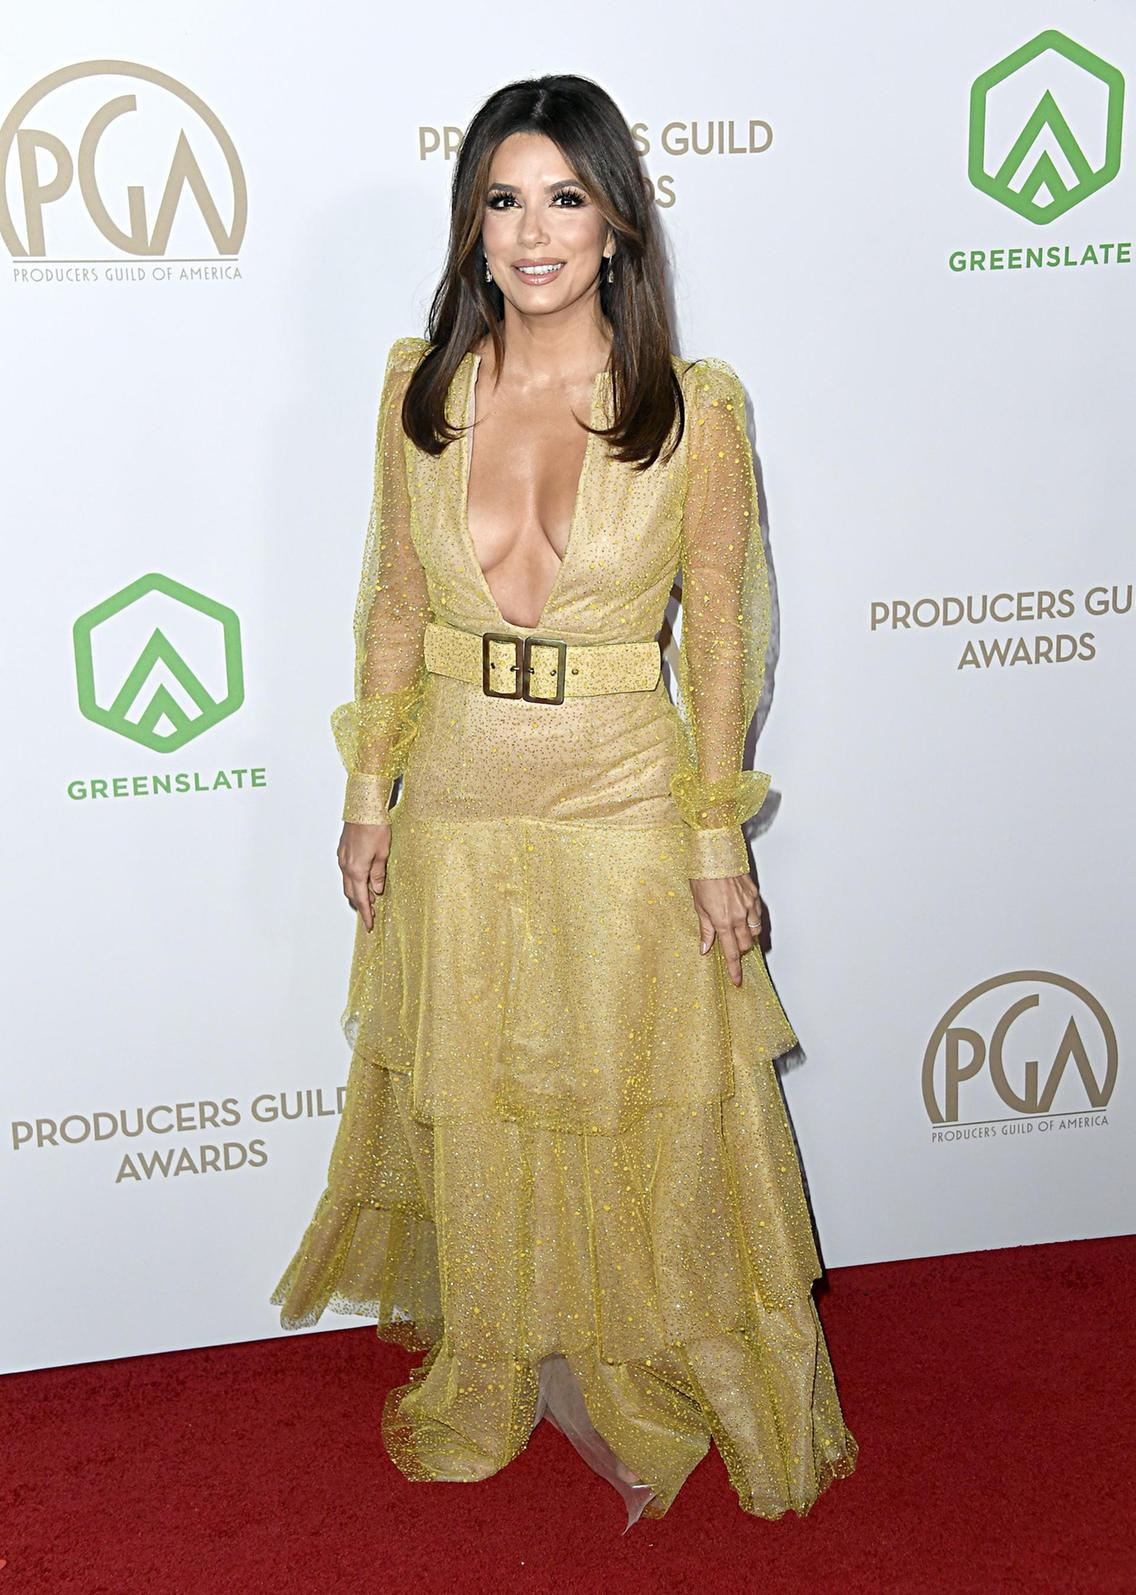 Eva Longoria dazzles in plunging gold gown at the 31st Annual Producers Guild Awards